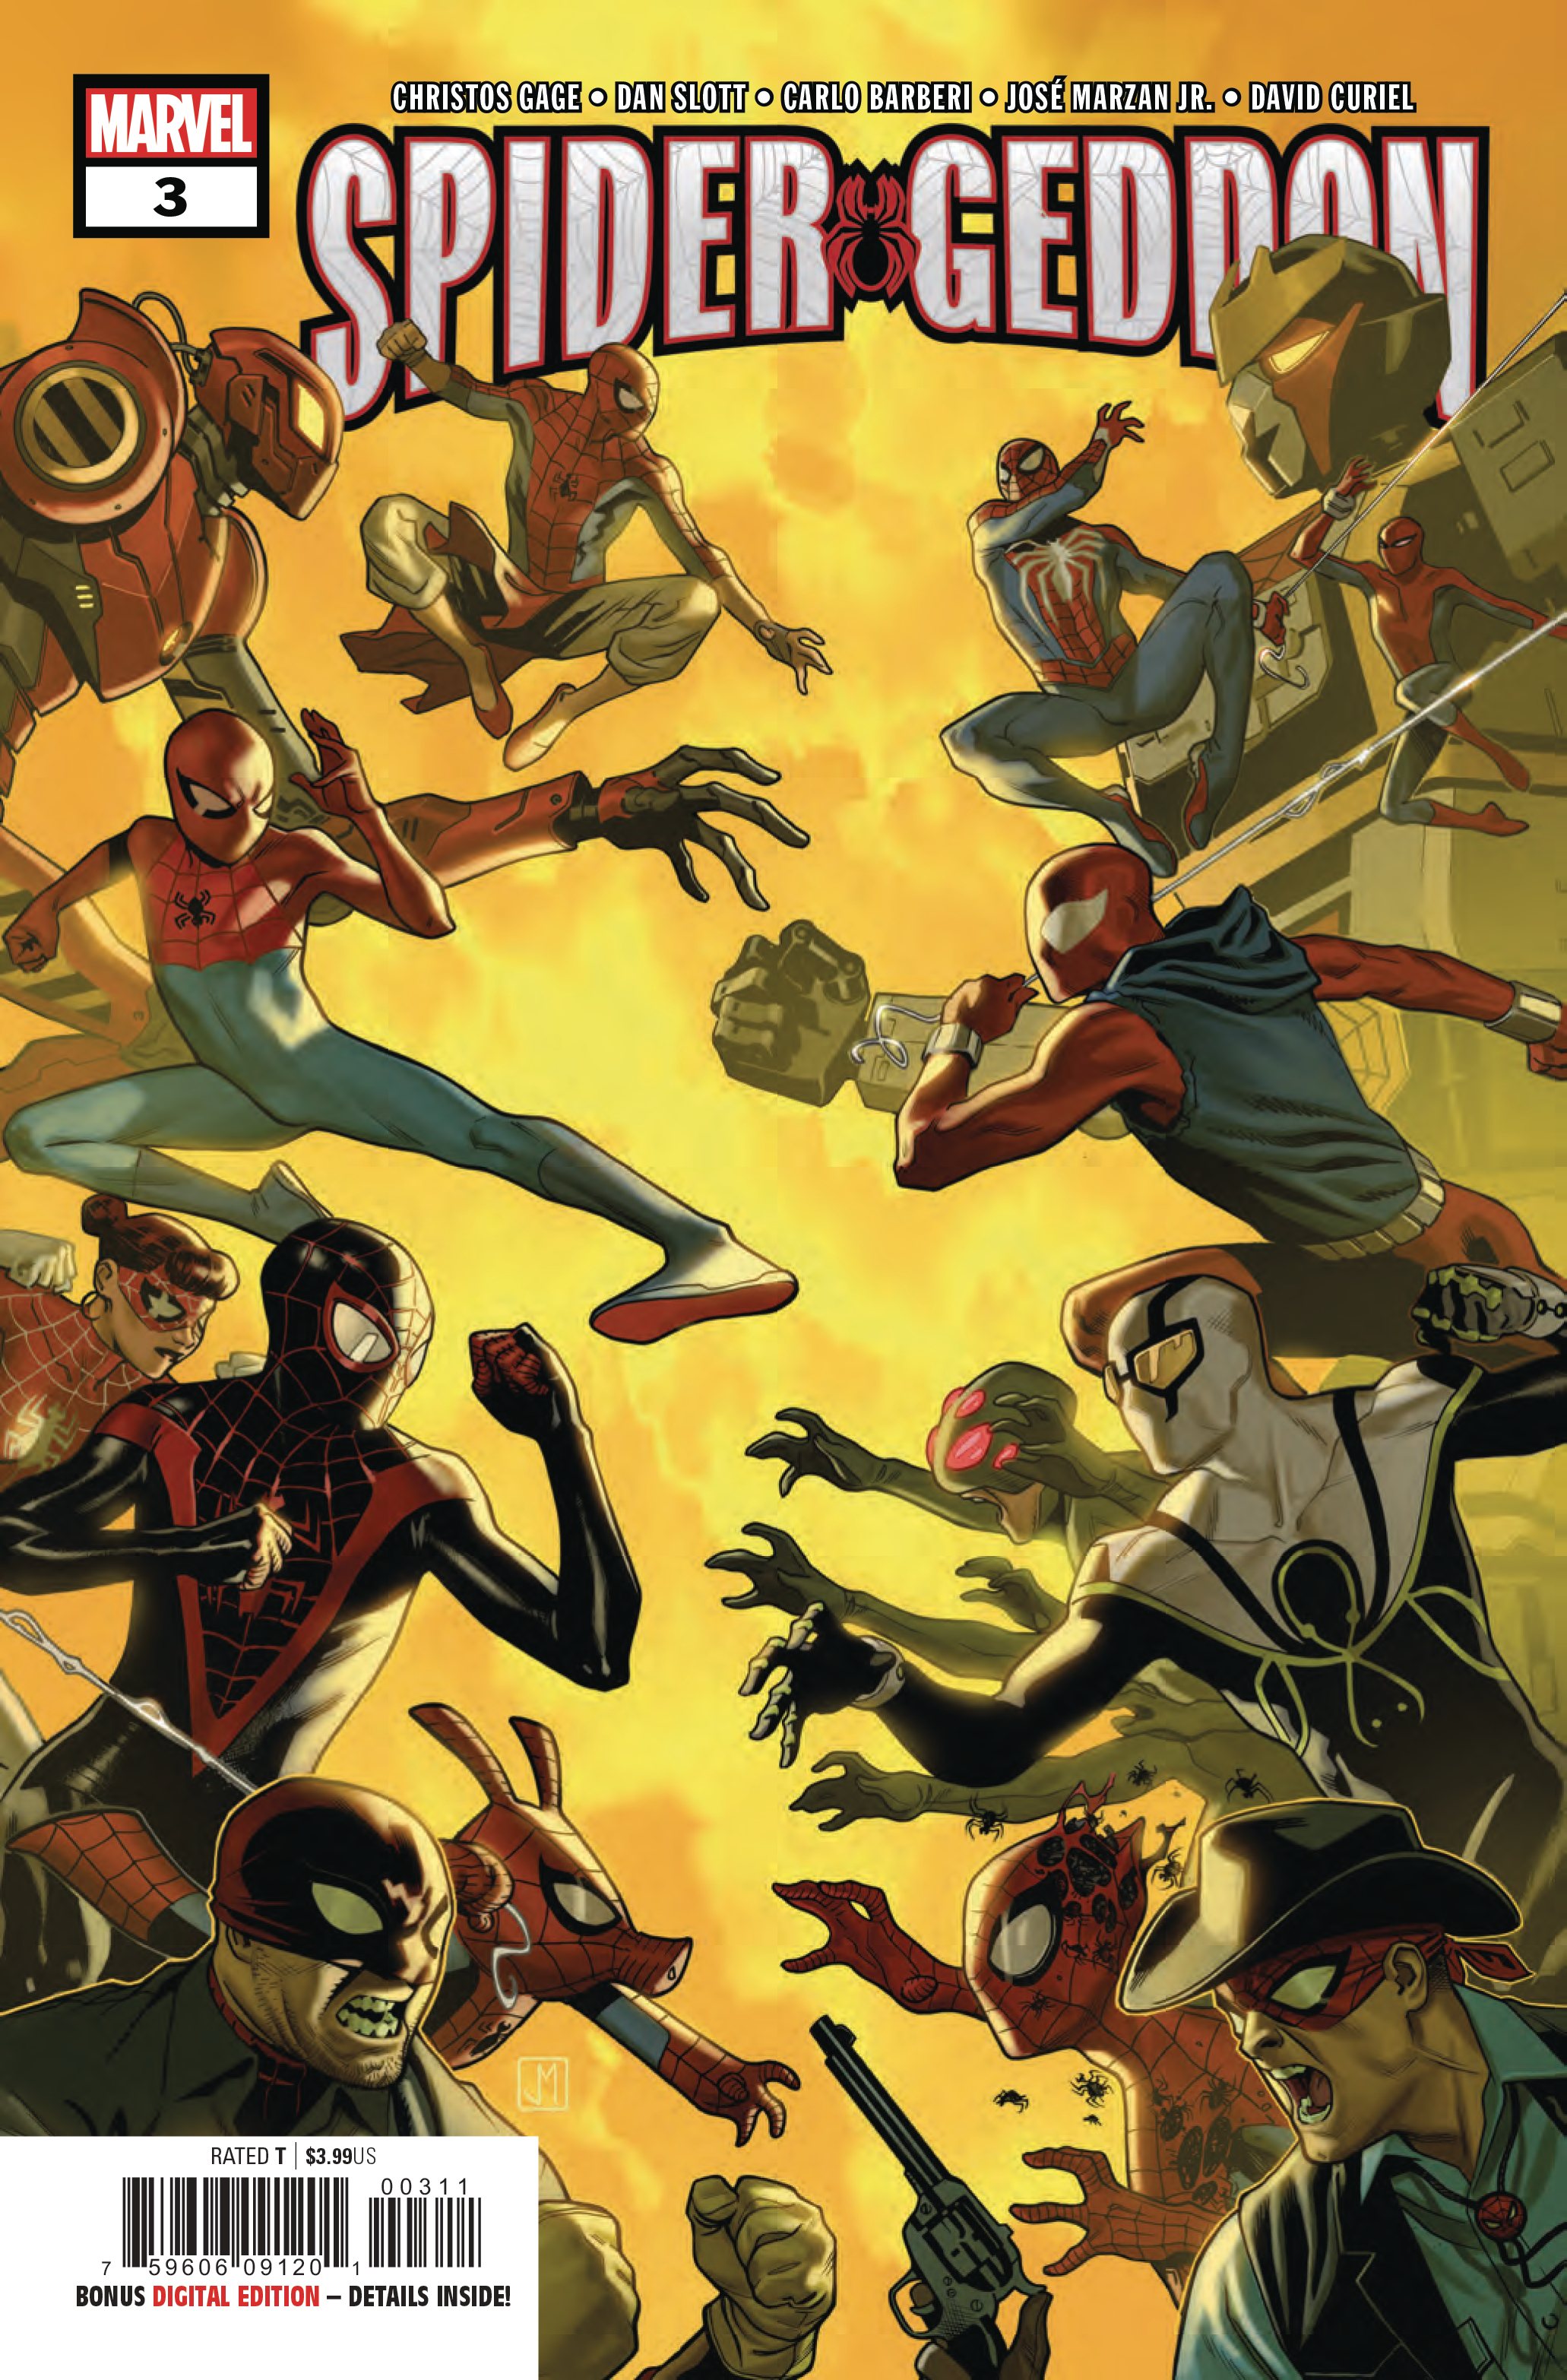 SPIDER-GEDDON #3 (OF 5)